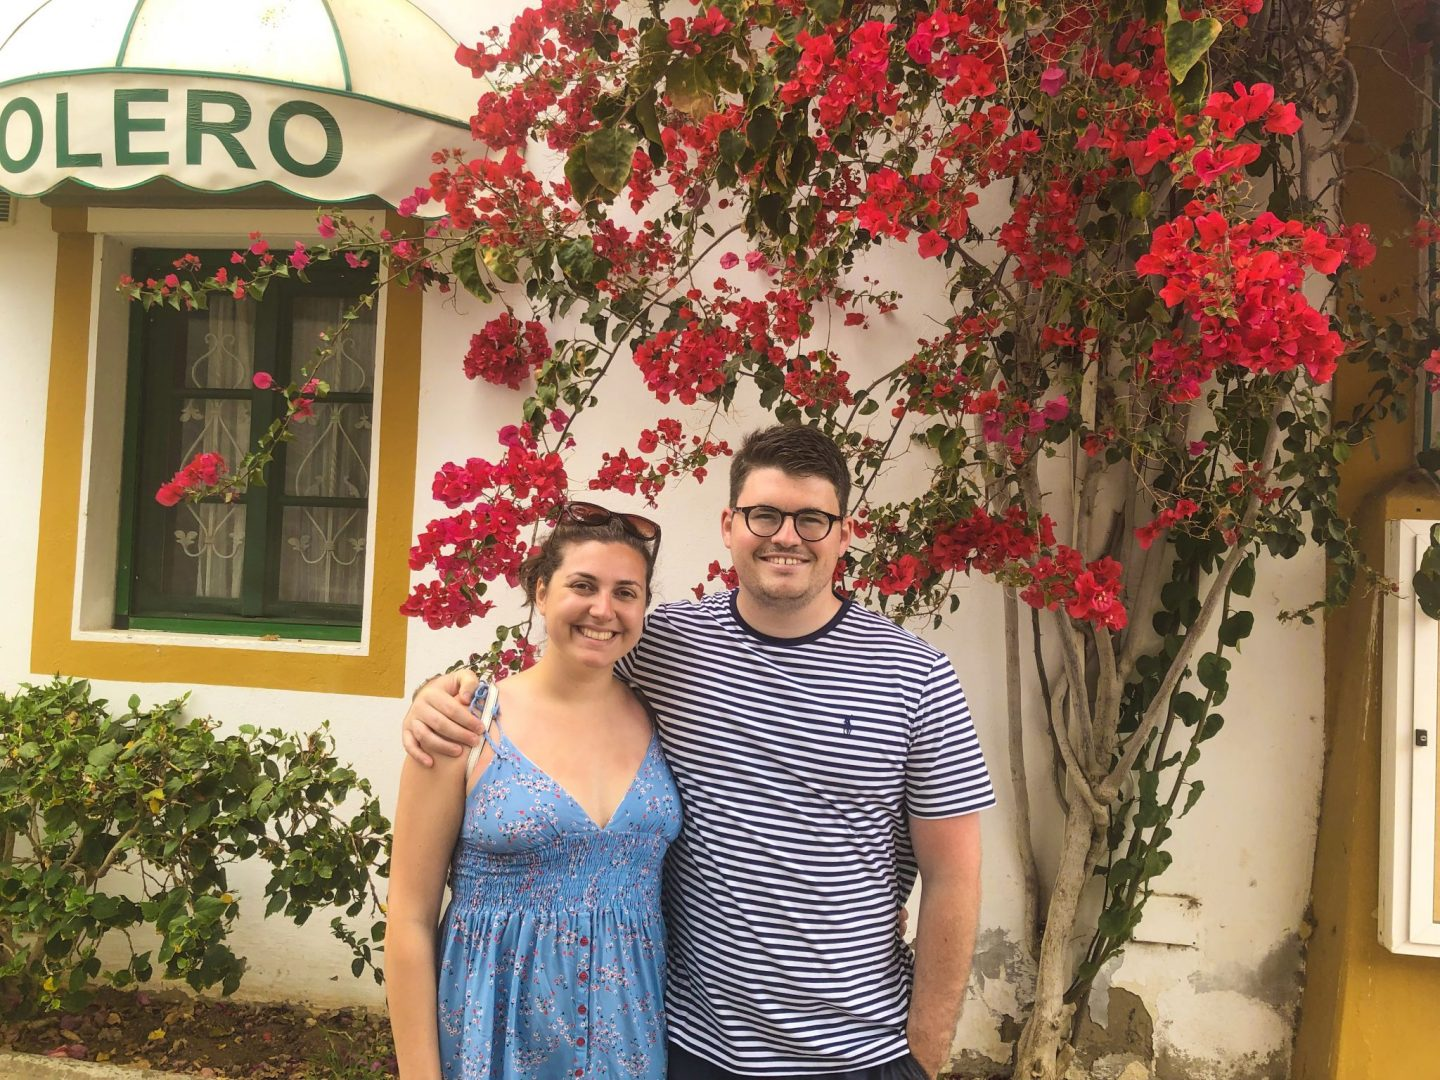 man and women stood in front of bright red flowers in puero mogan in gran canaria